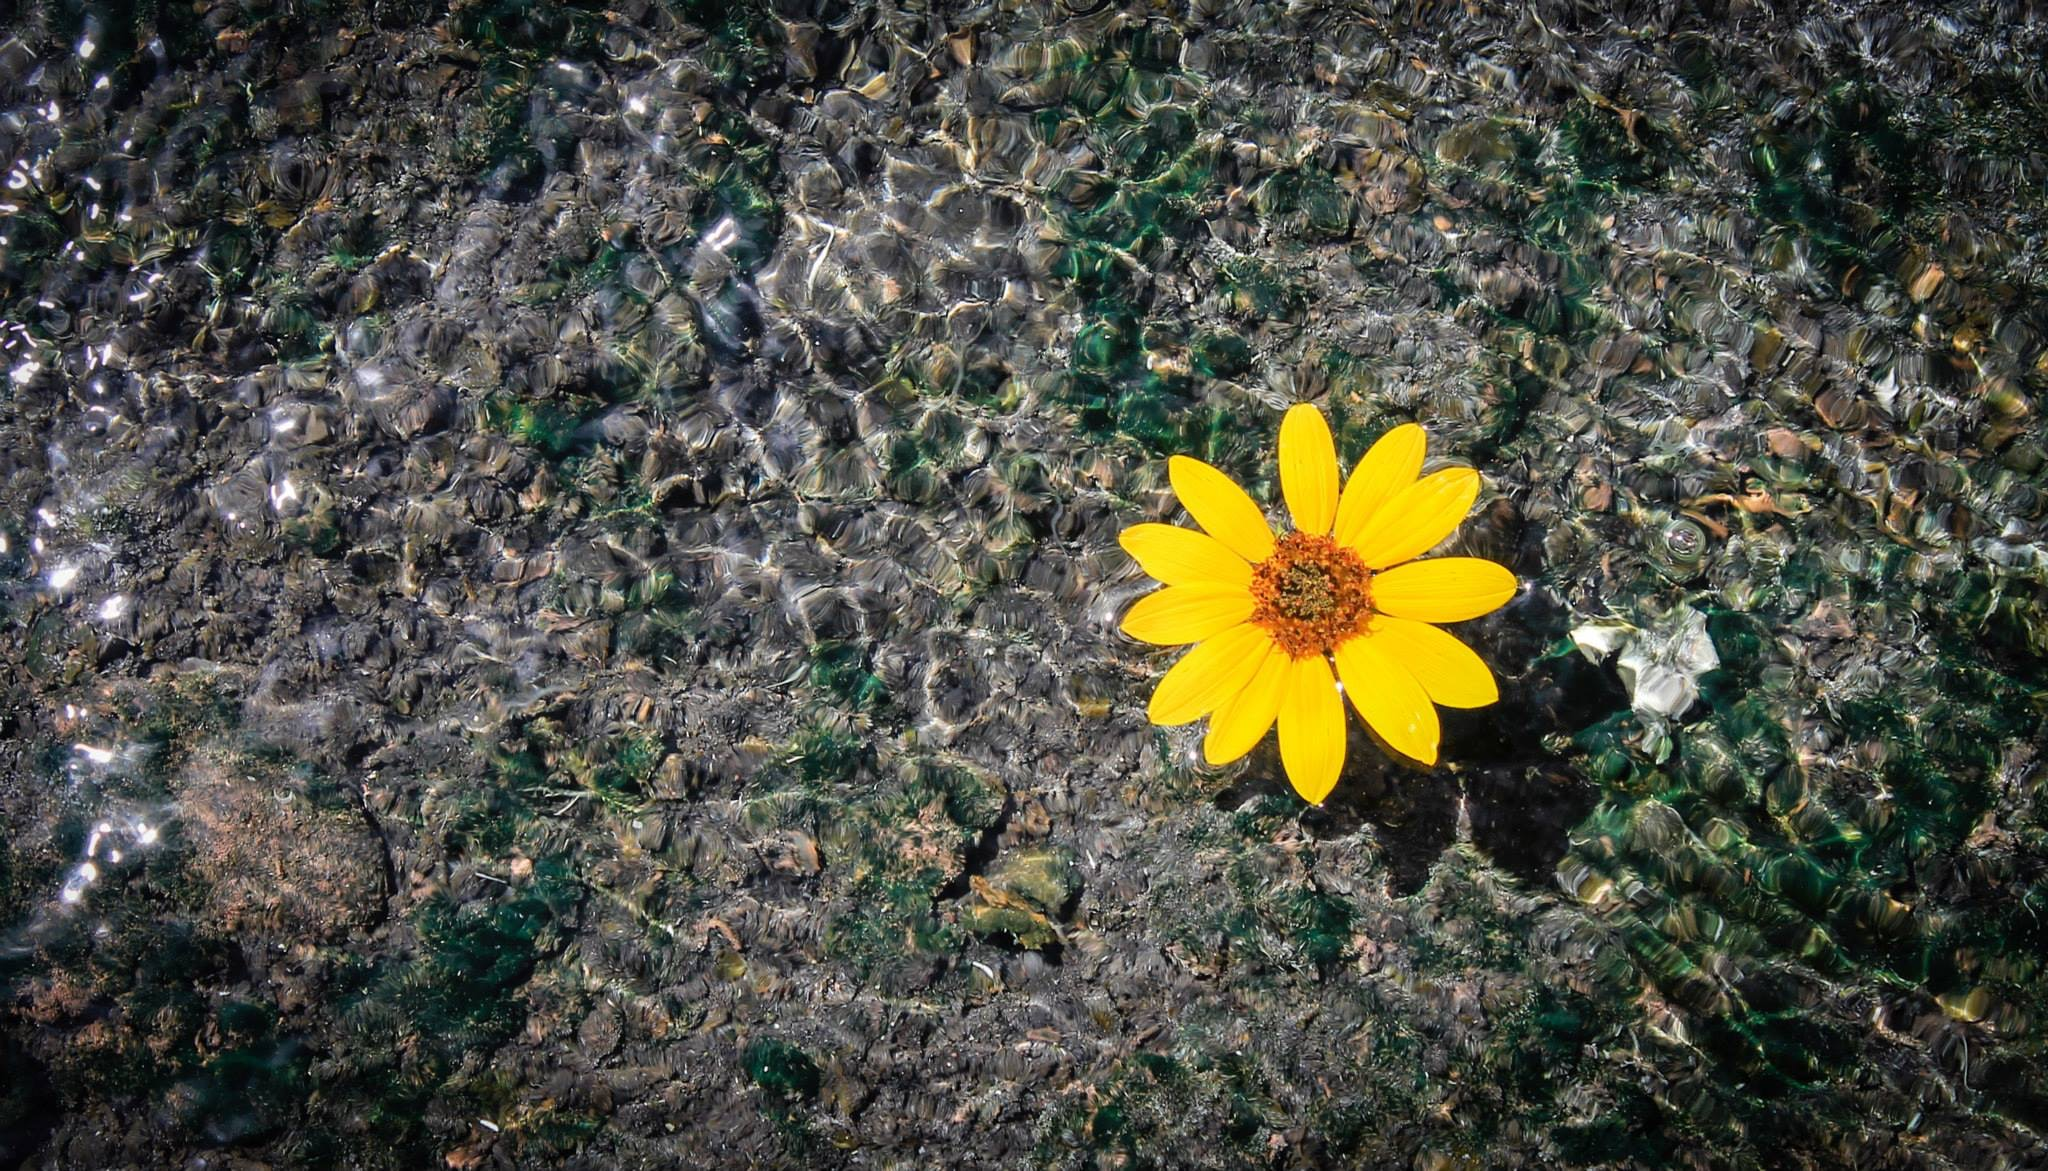 A yellow flower floating on the clear surface of water